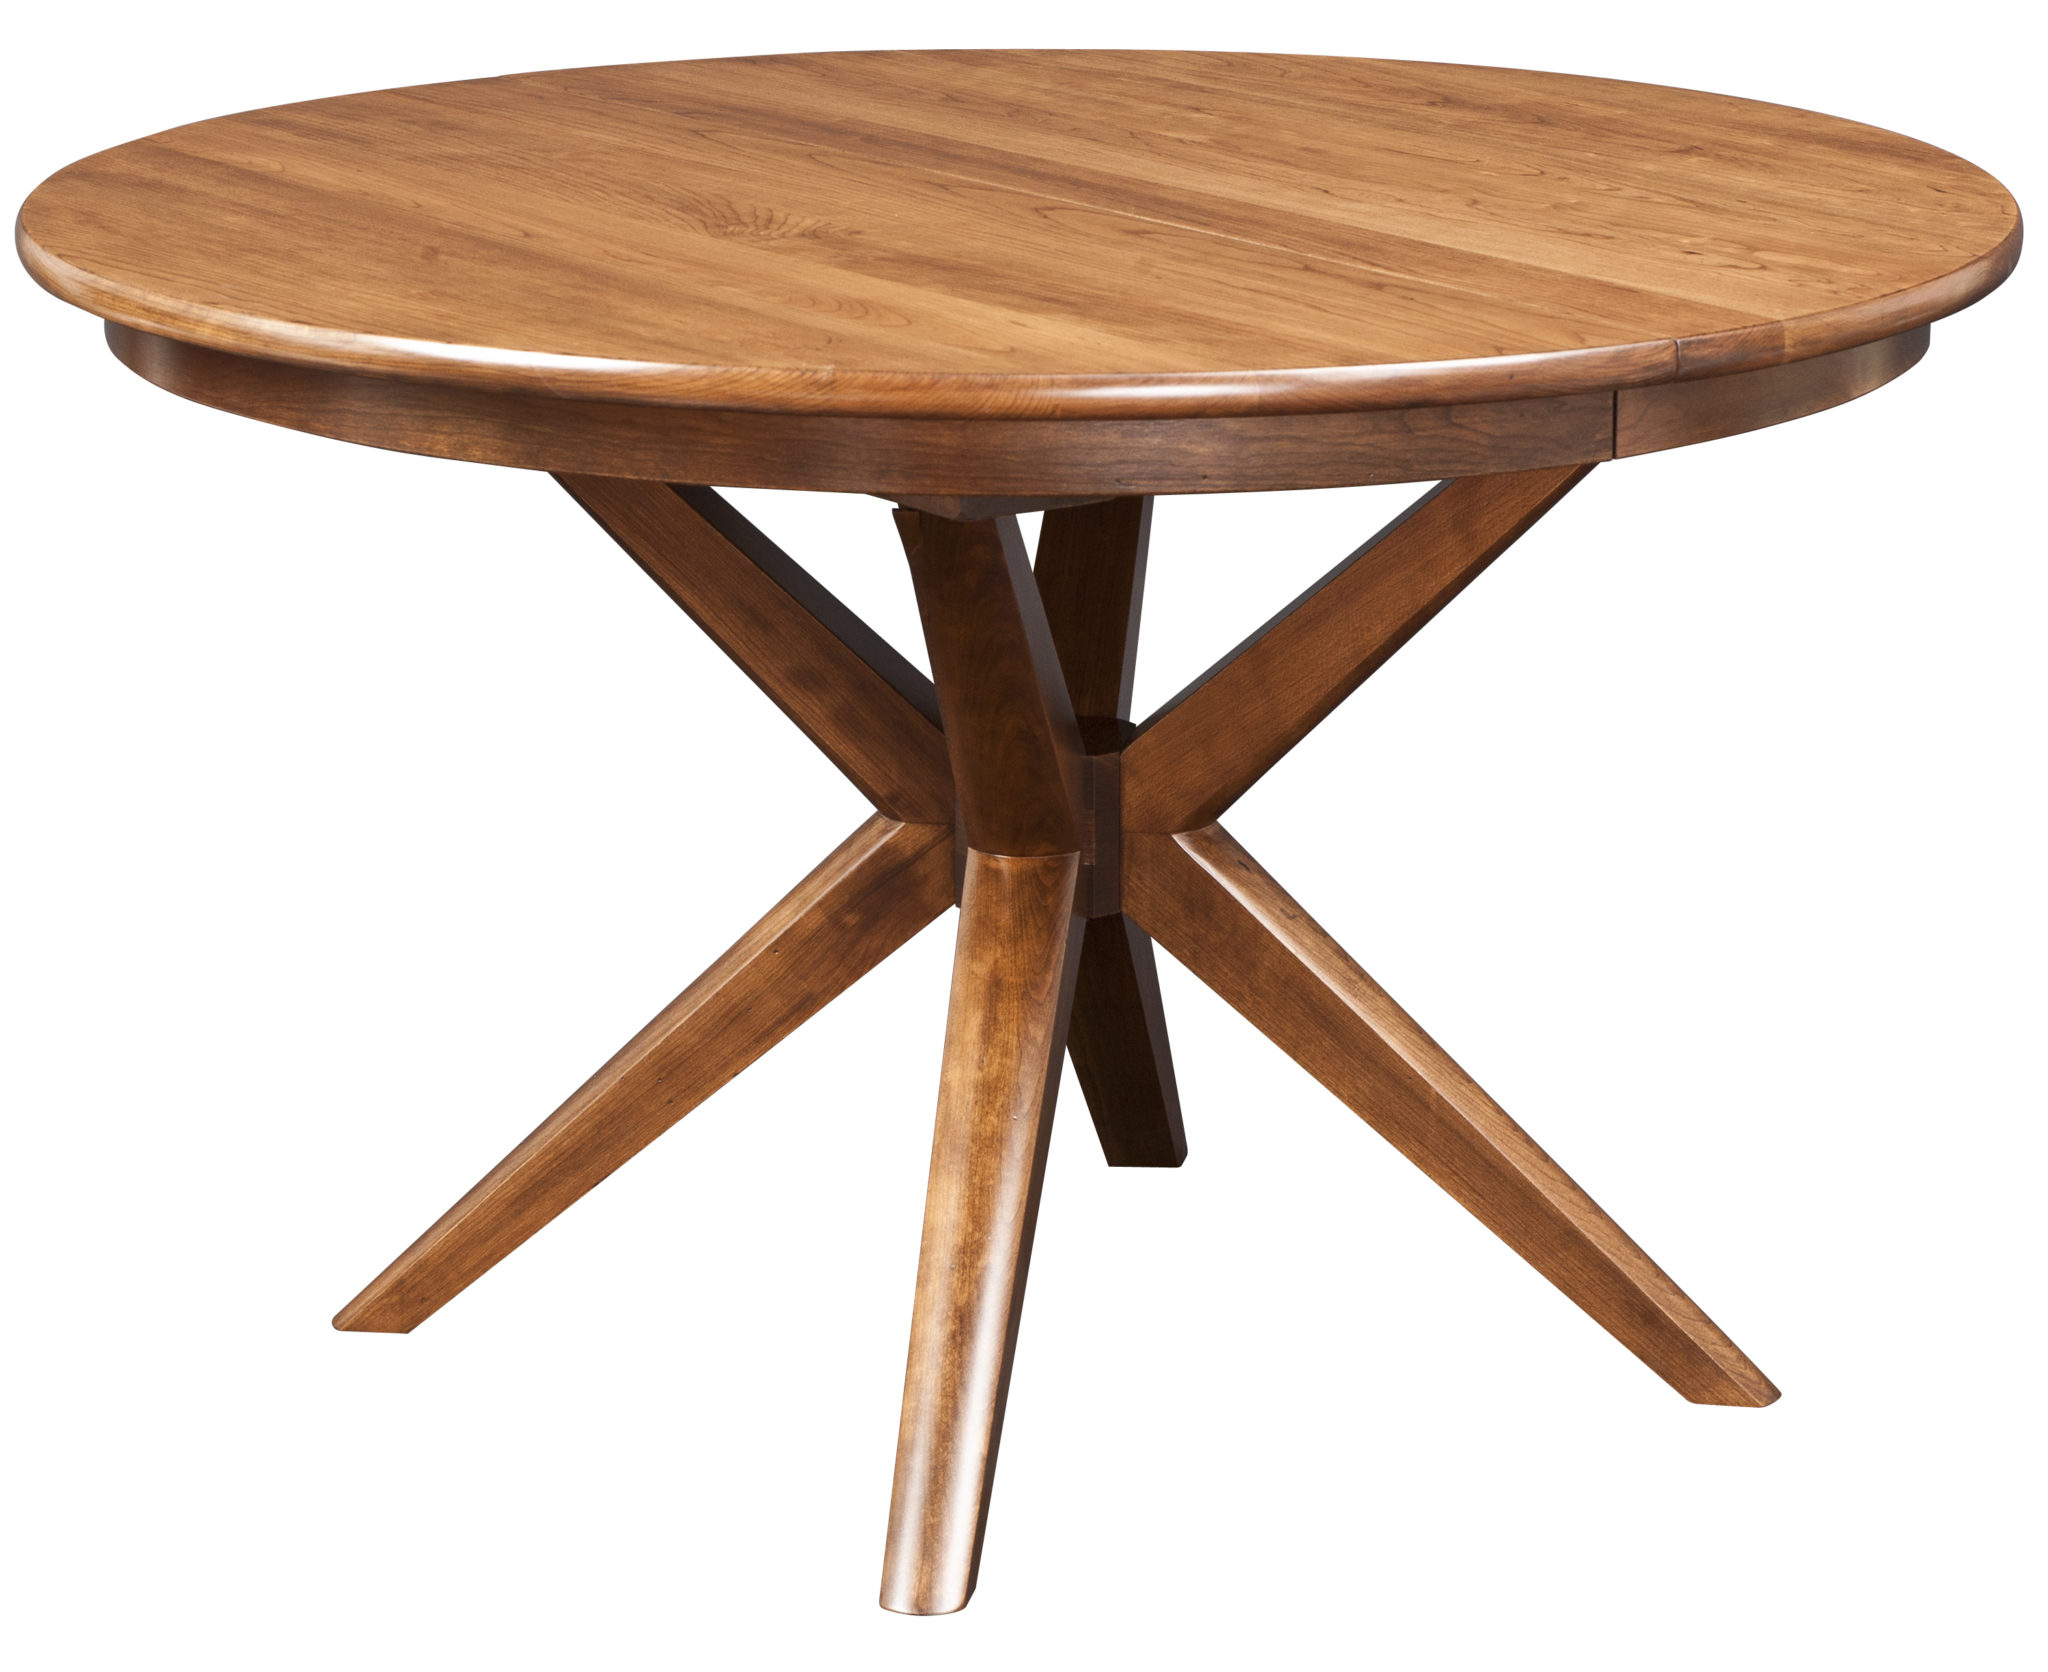 Round Seatle Table Image